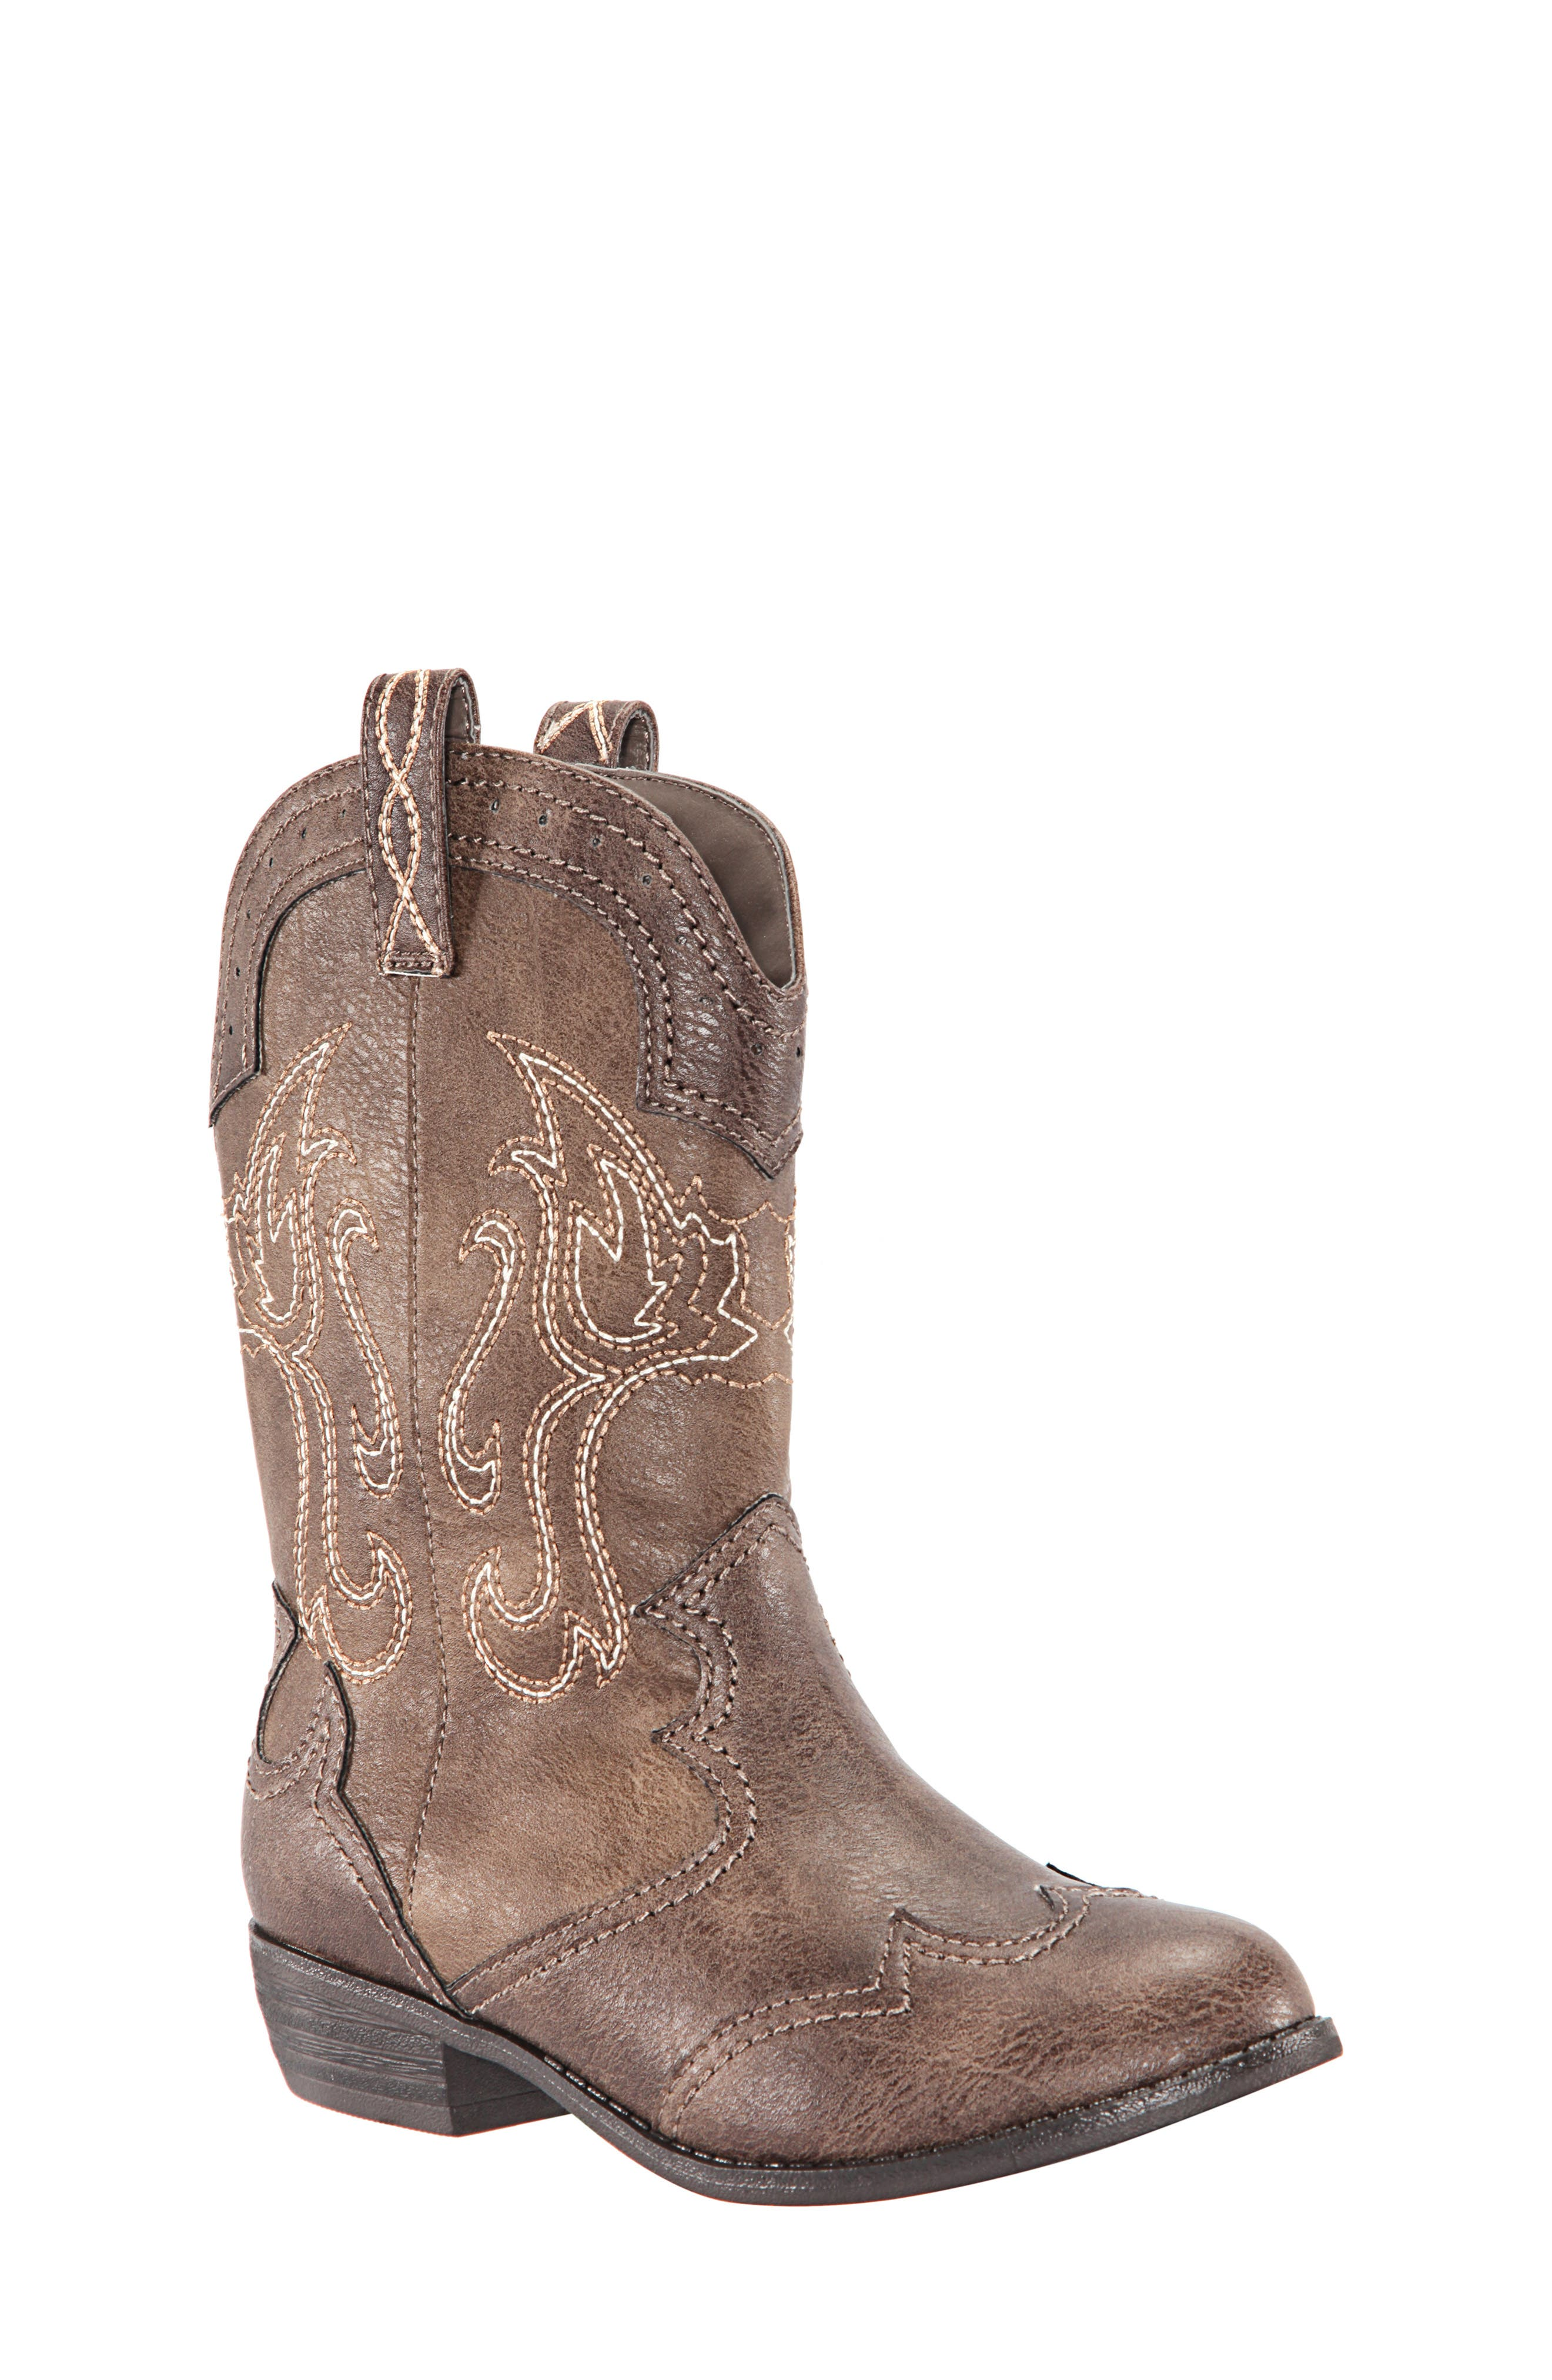 Beti Western Boot,                         Main,                         color, BROWN DISTRESSED